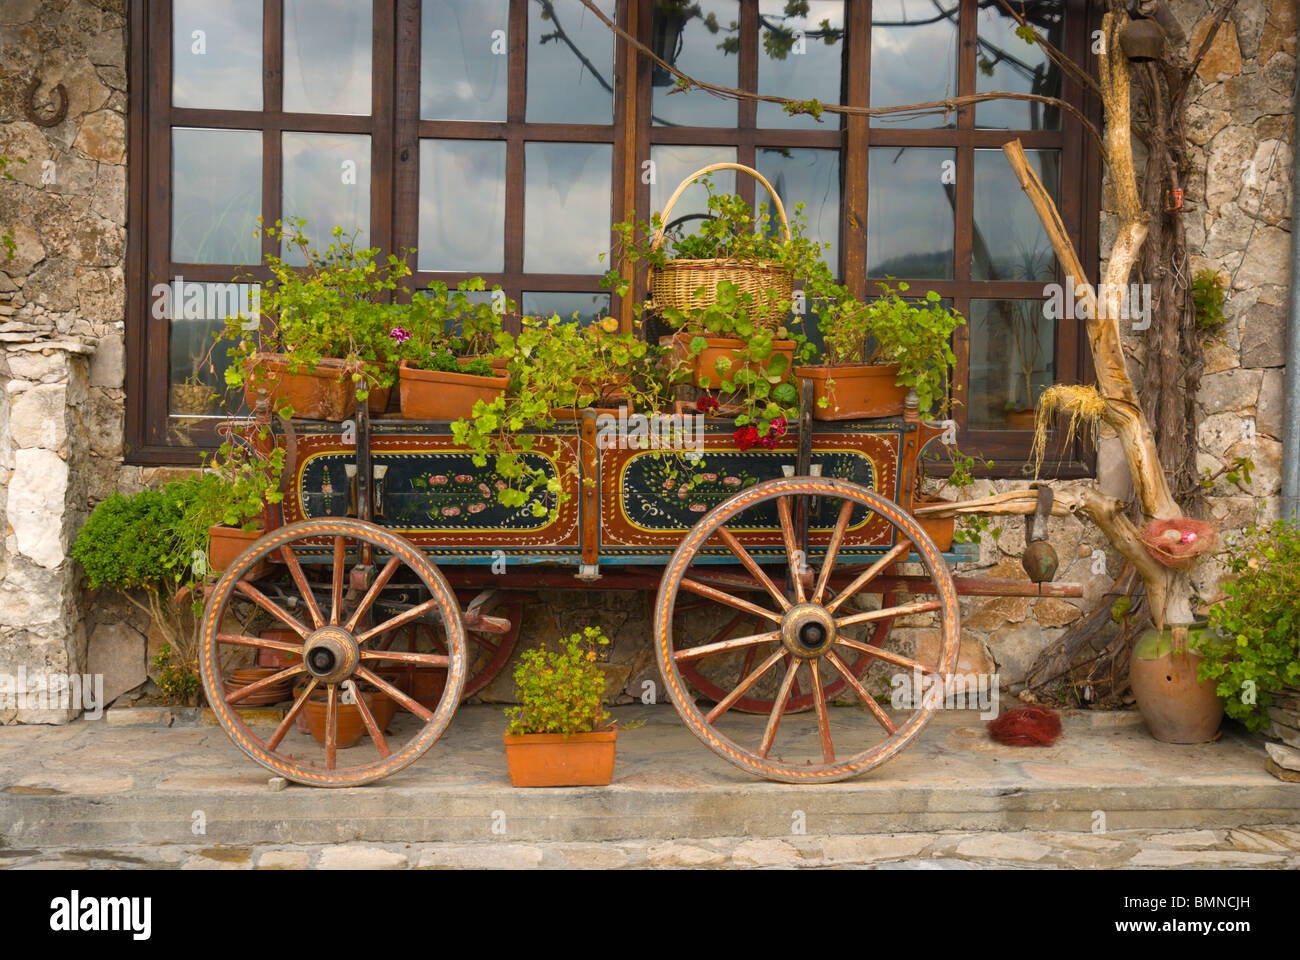 plants outside restaurant stockfotos plants outside restaurant bilder alamy. Black Bedroom Furniture Sets. Home Design Ideas